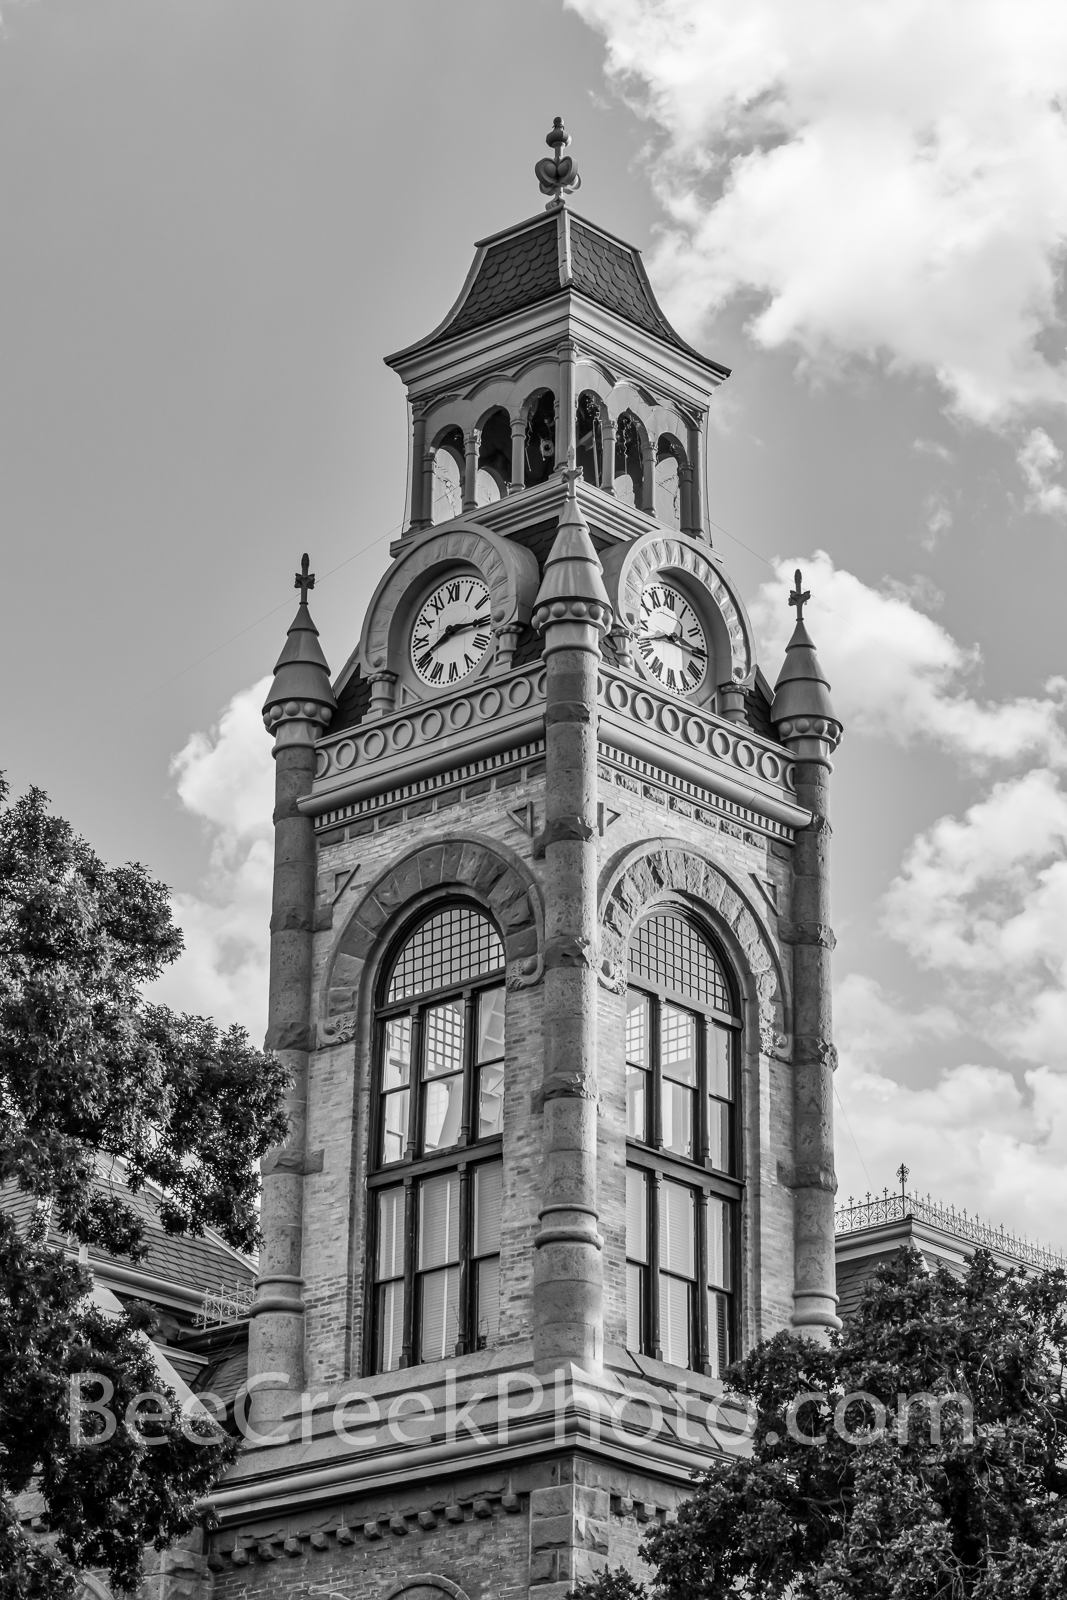 llano county courthouse, courthouse, texas courthouses, texas, county seat, llano, archtiectural, romanesque revival, b w, black and white, vertical,national register of historic places , historic, , photo